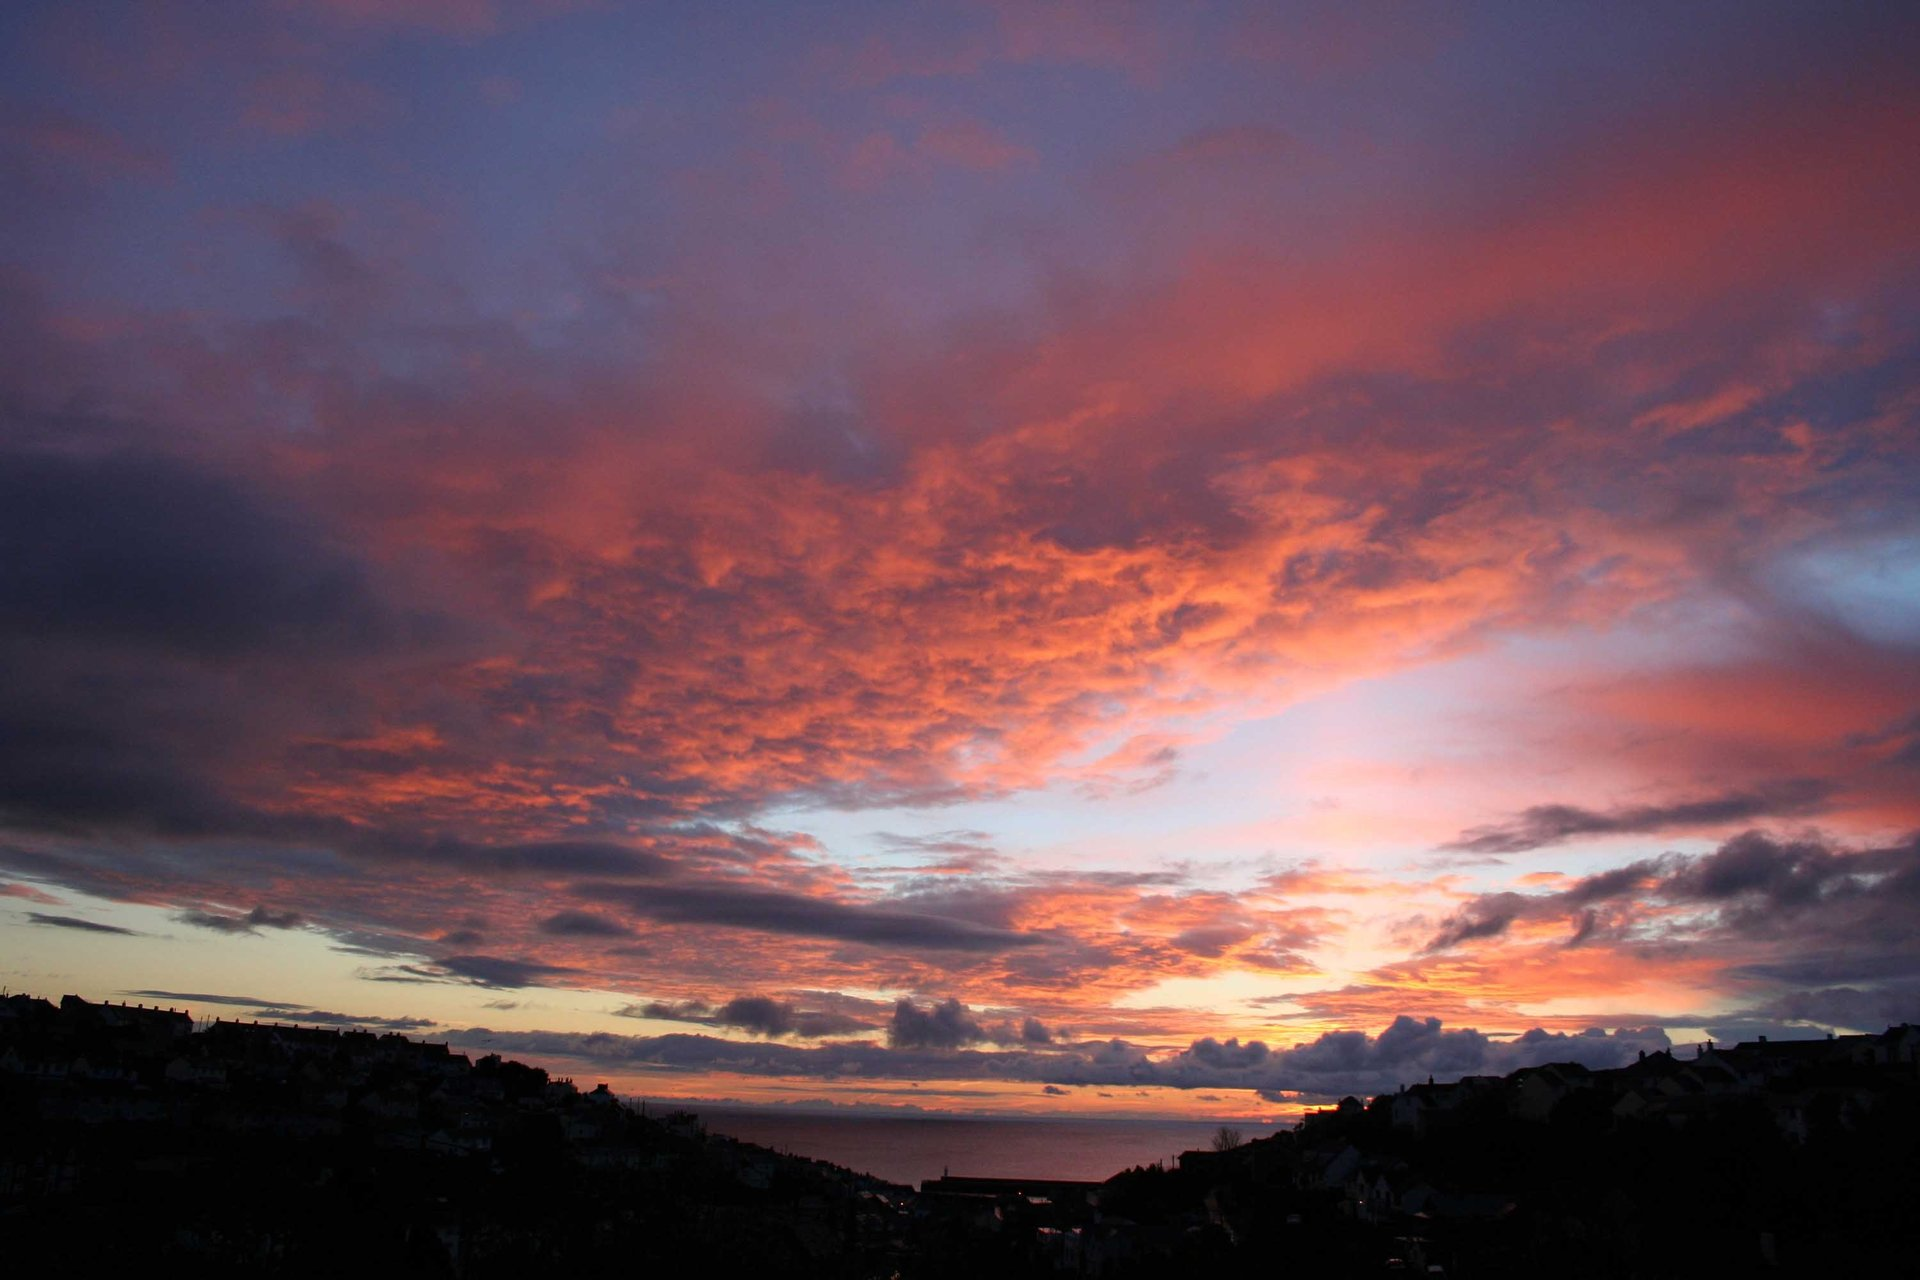 Sunrise over Mevagissey Cornwall in photo gallery by L A Kent author of Rogue Flamingo